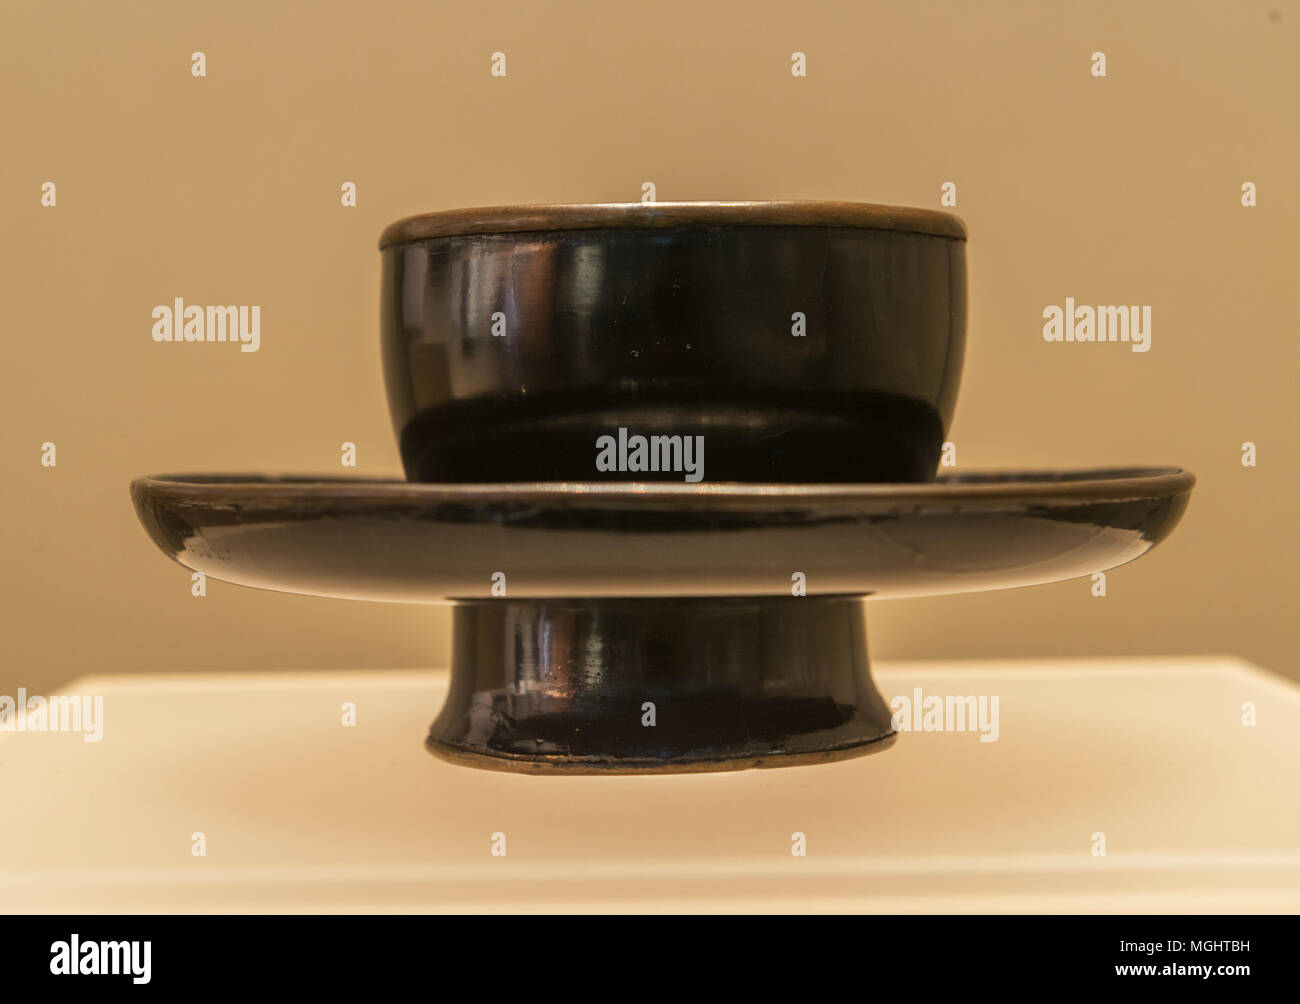 Black lacquer bowl stand from Song or Yuan dynasty, donated by Hong Kong entrepreneurial couple Cao Qiyong and Luo Bizhen to the Zhejiang Museum. - Stock Image